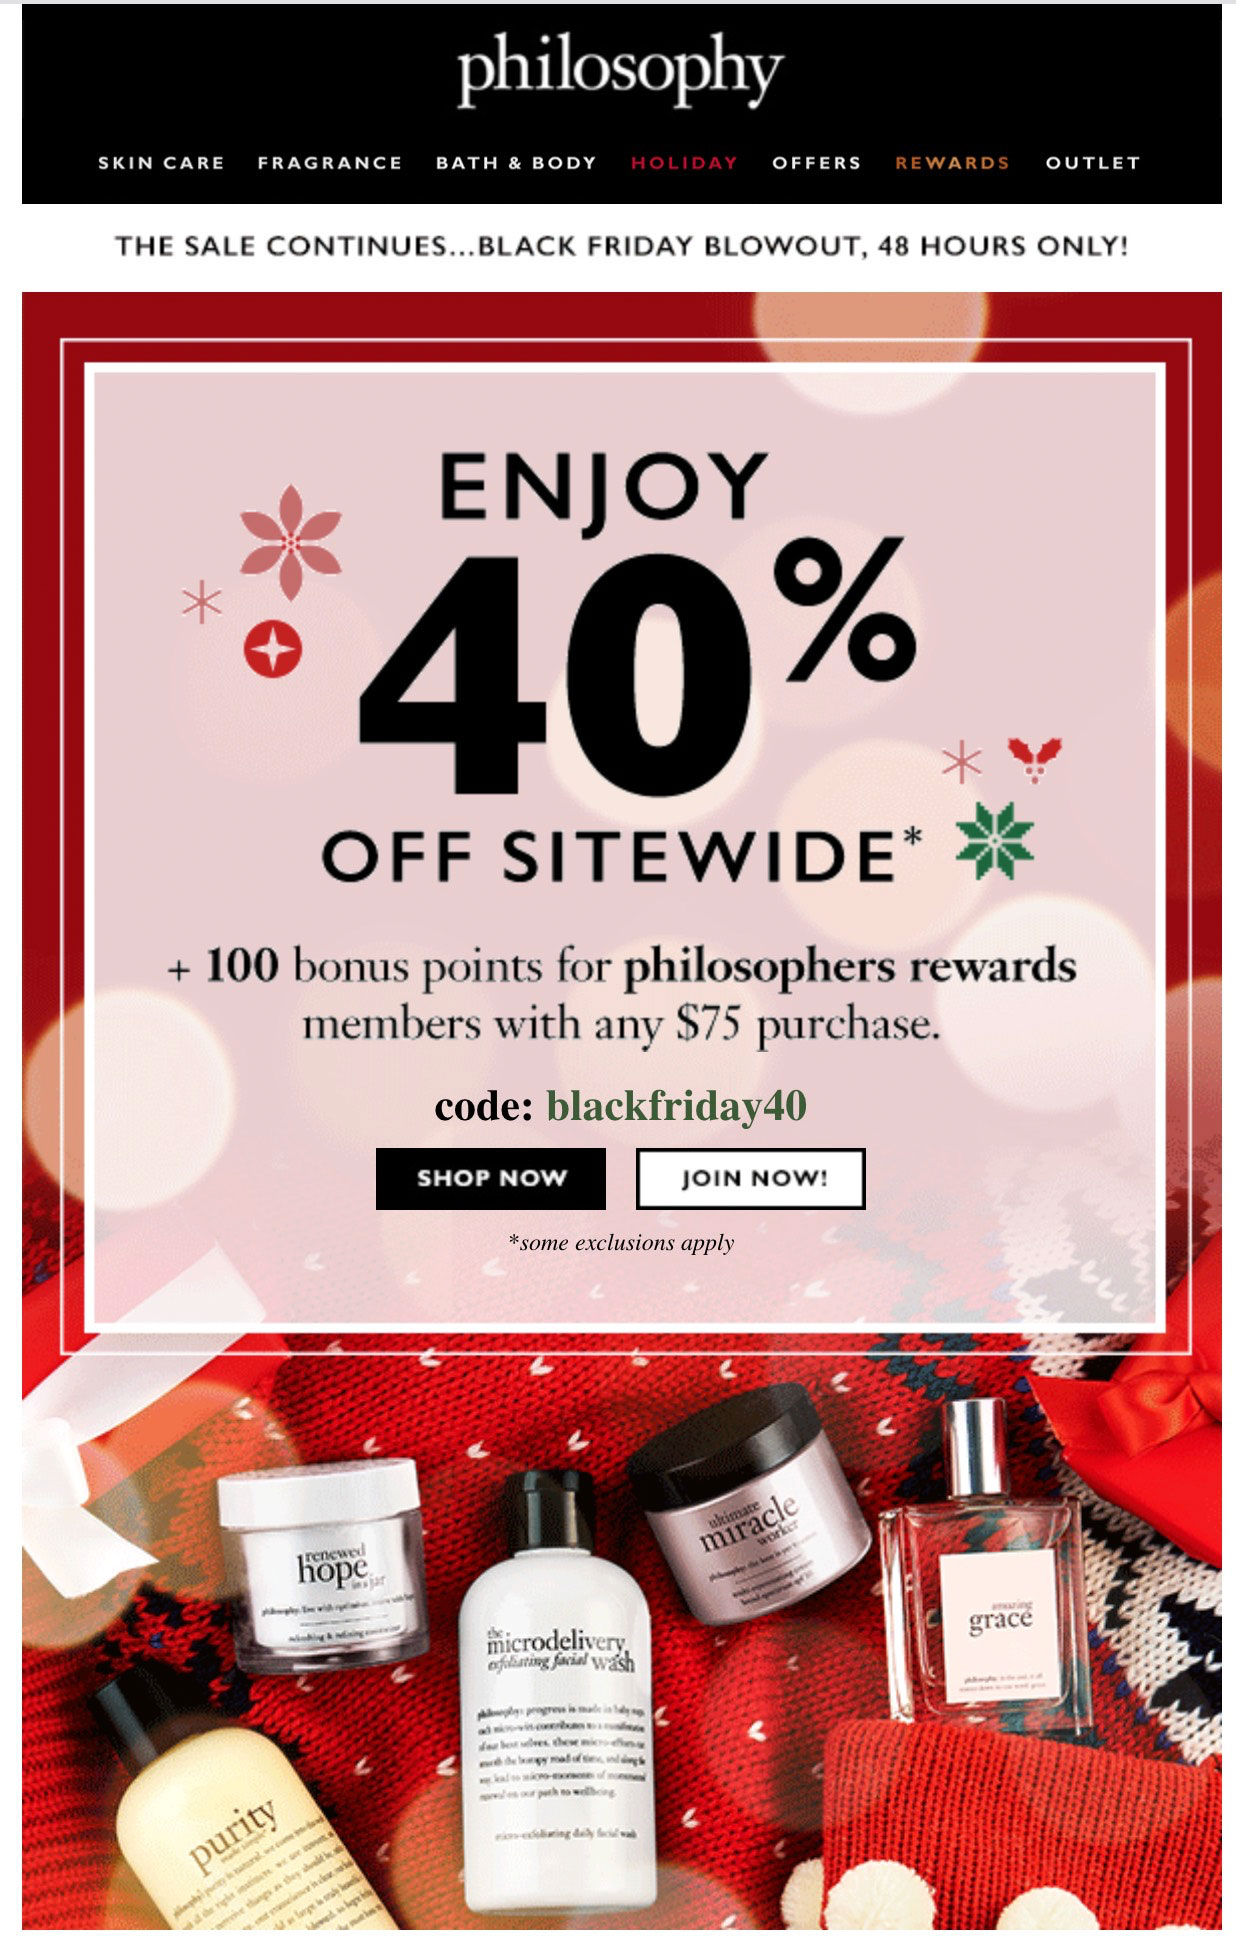 Philosophy pushes its rewards program.